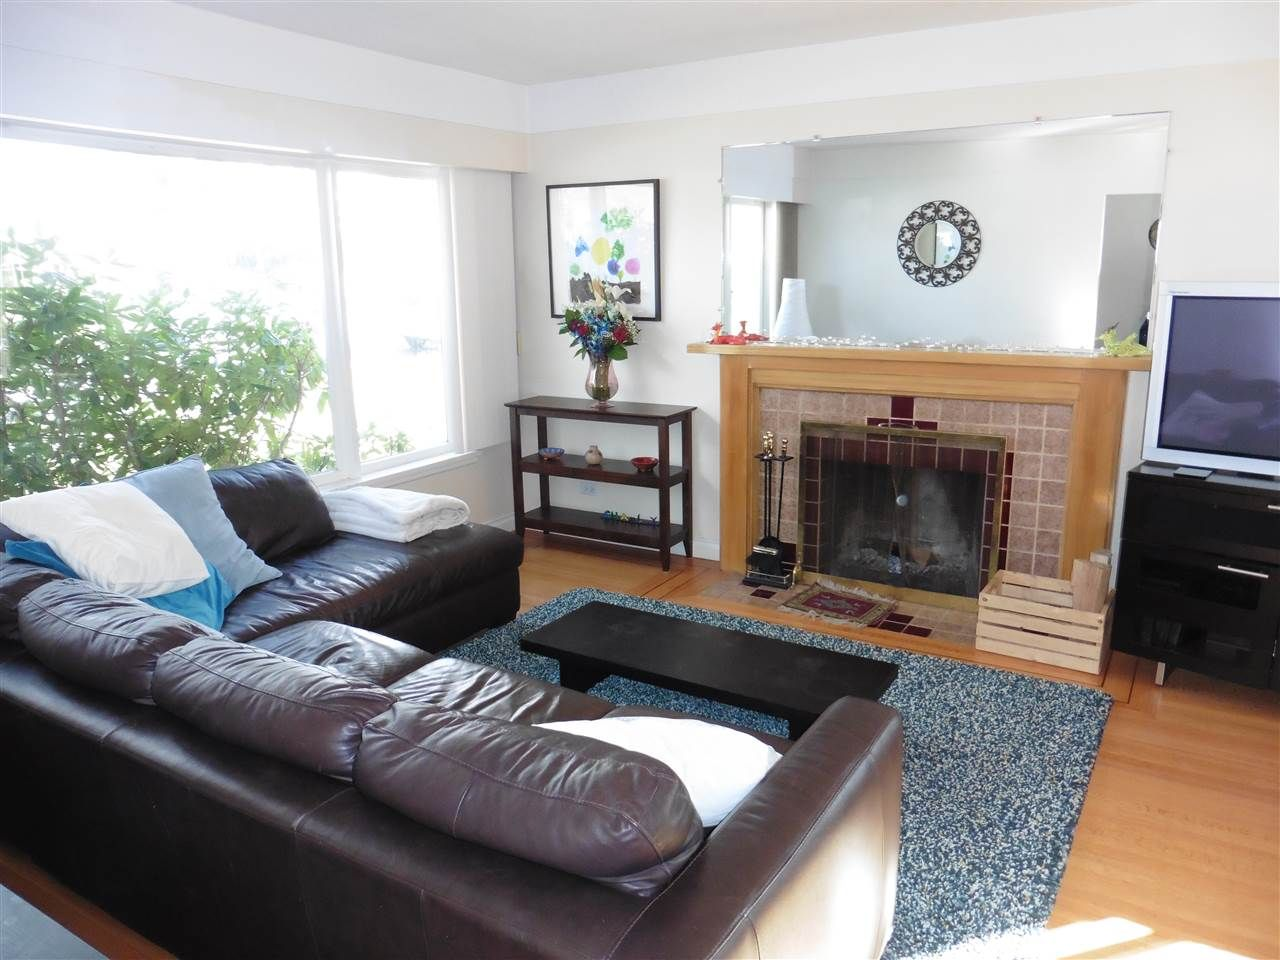 Photo 3: Photos: 1626 E 56TH Avenue in Vancouver: Fraserview VE House for sale (Vancouver East)  : MLS®# R2443664